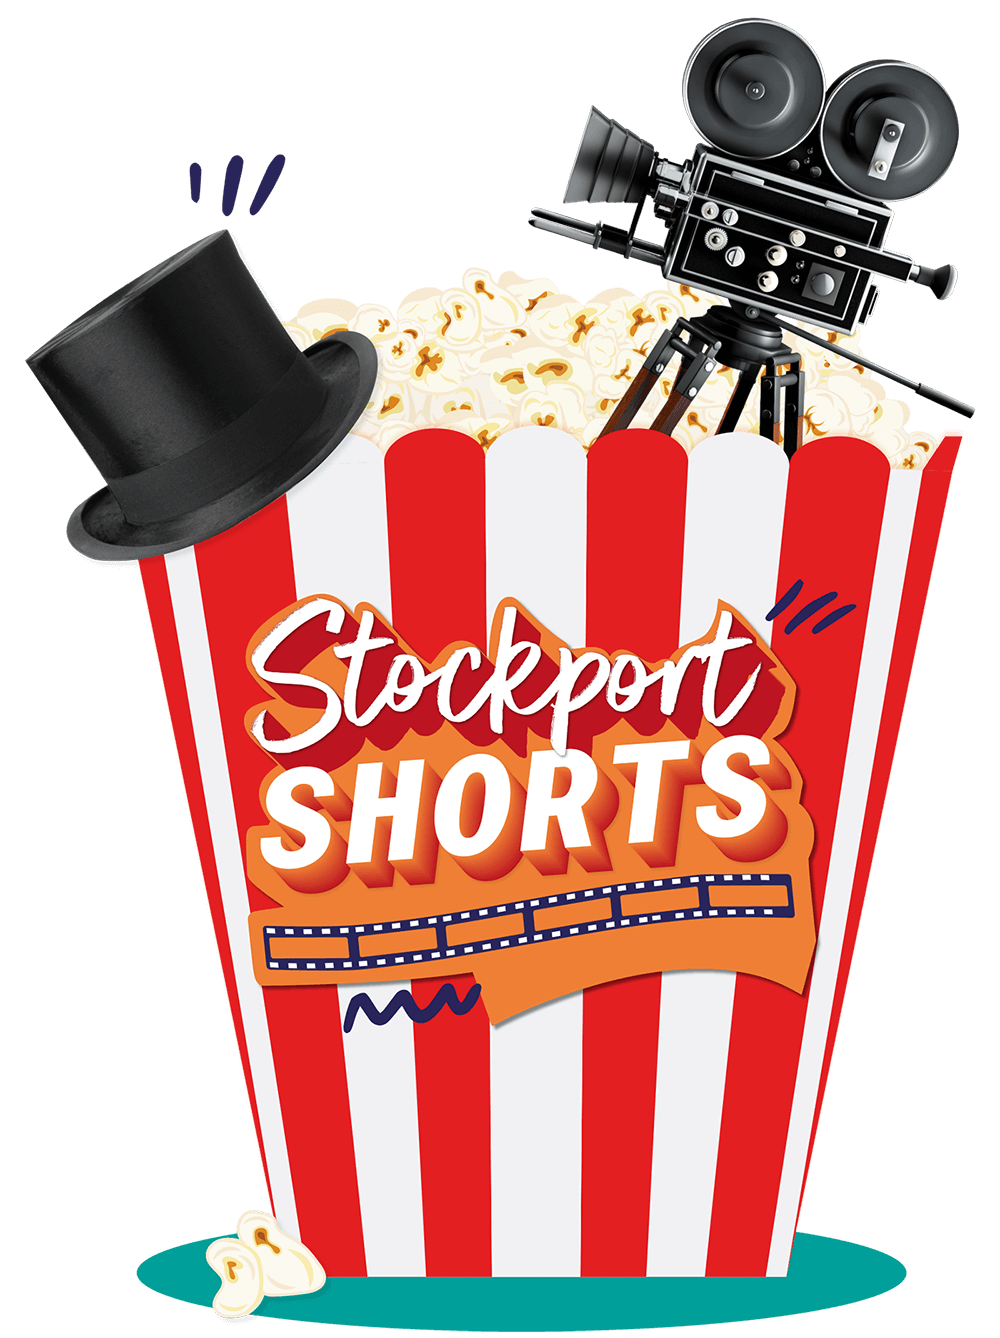 Stockport Shorts